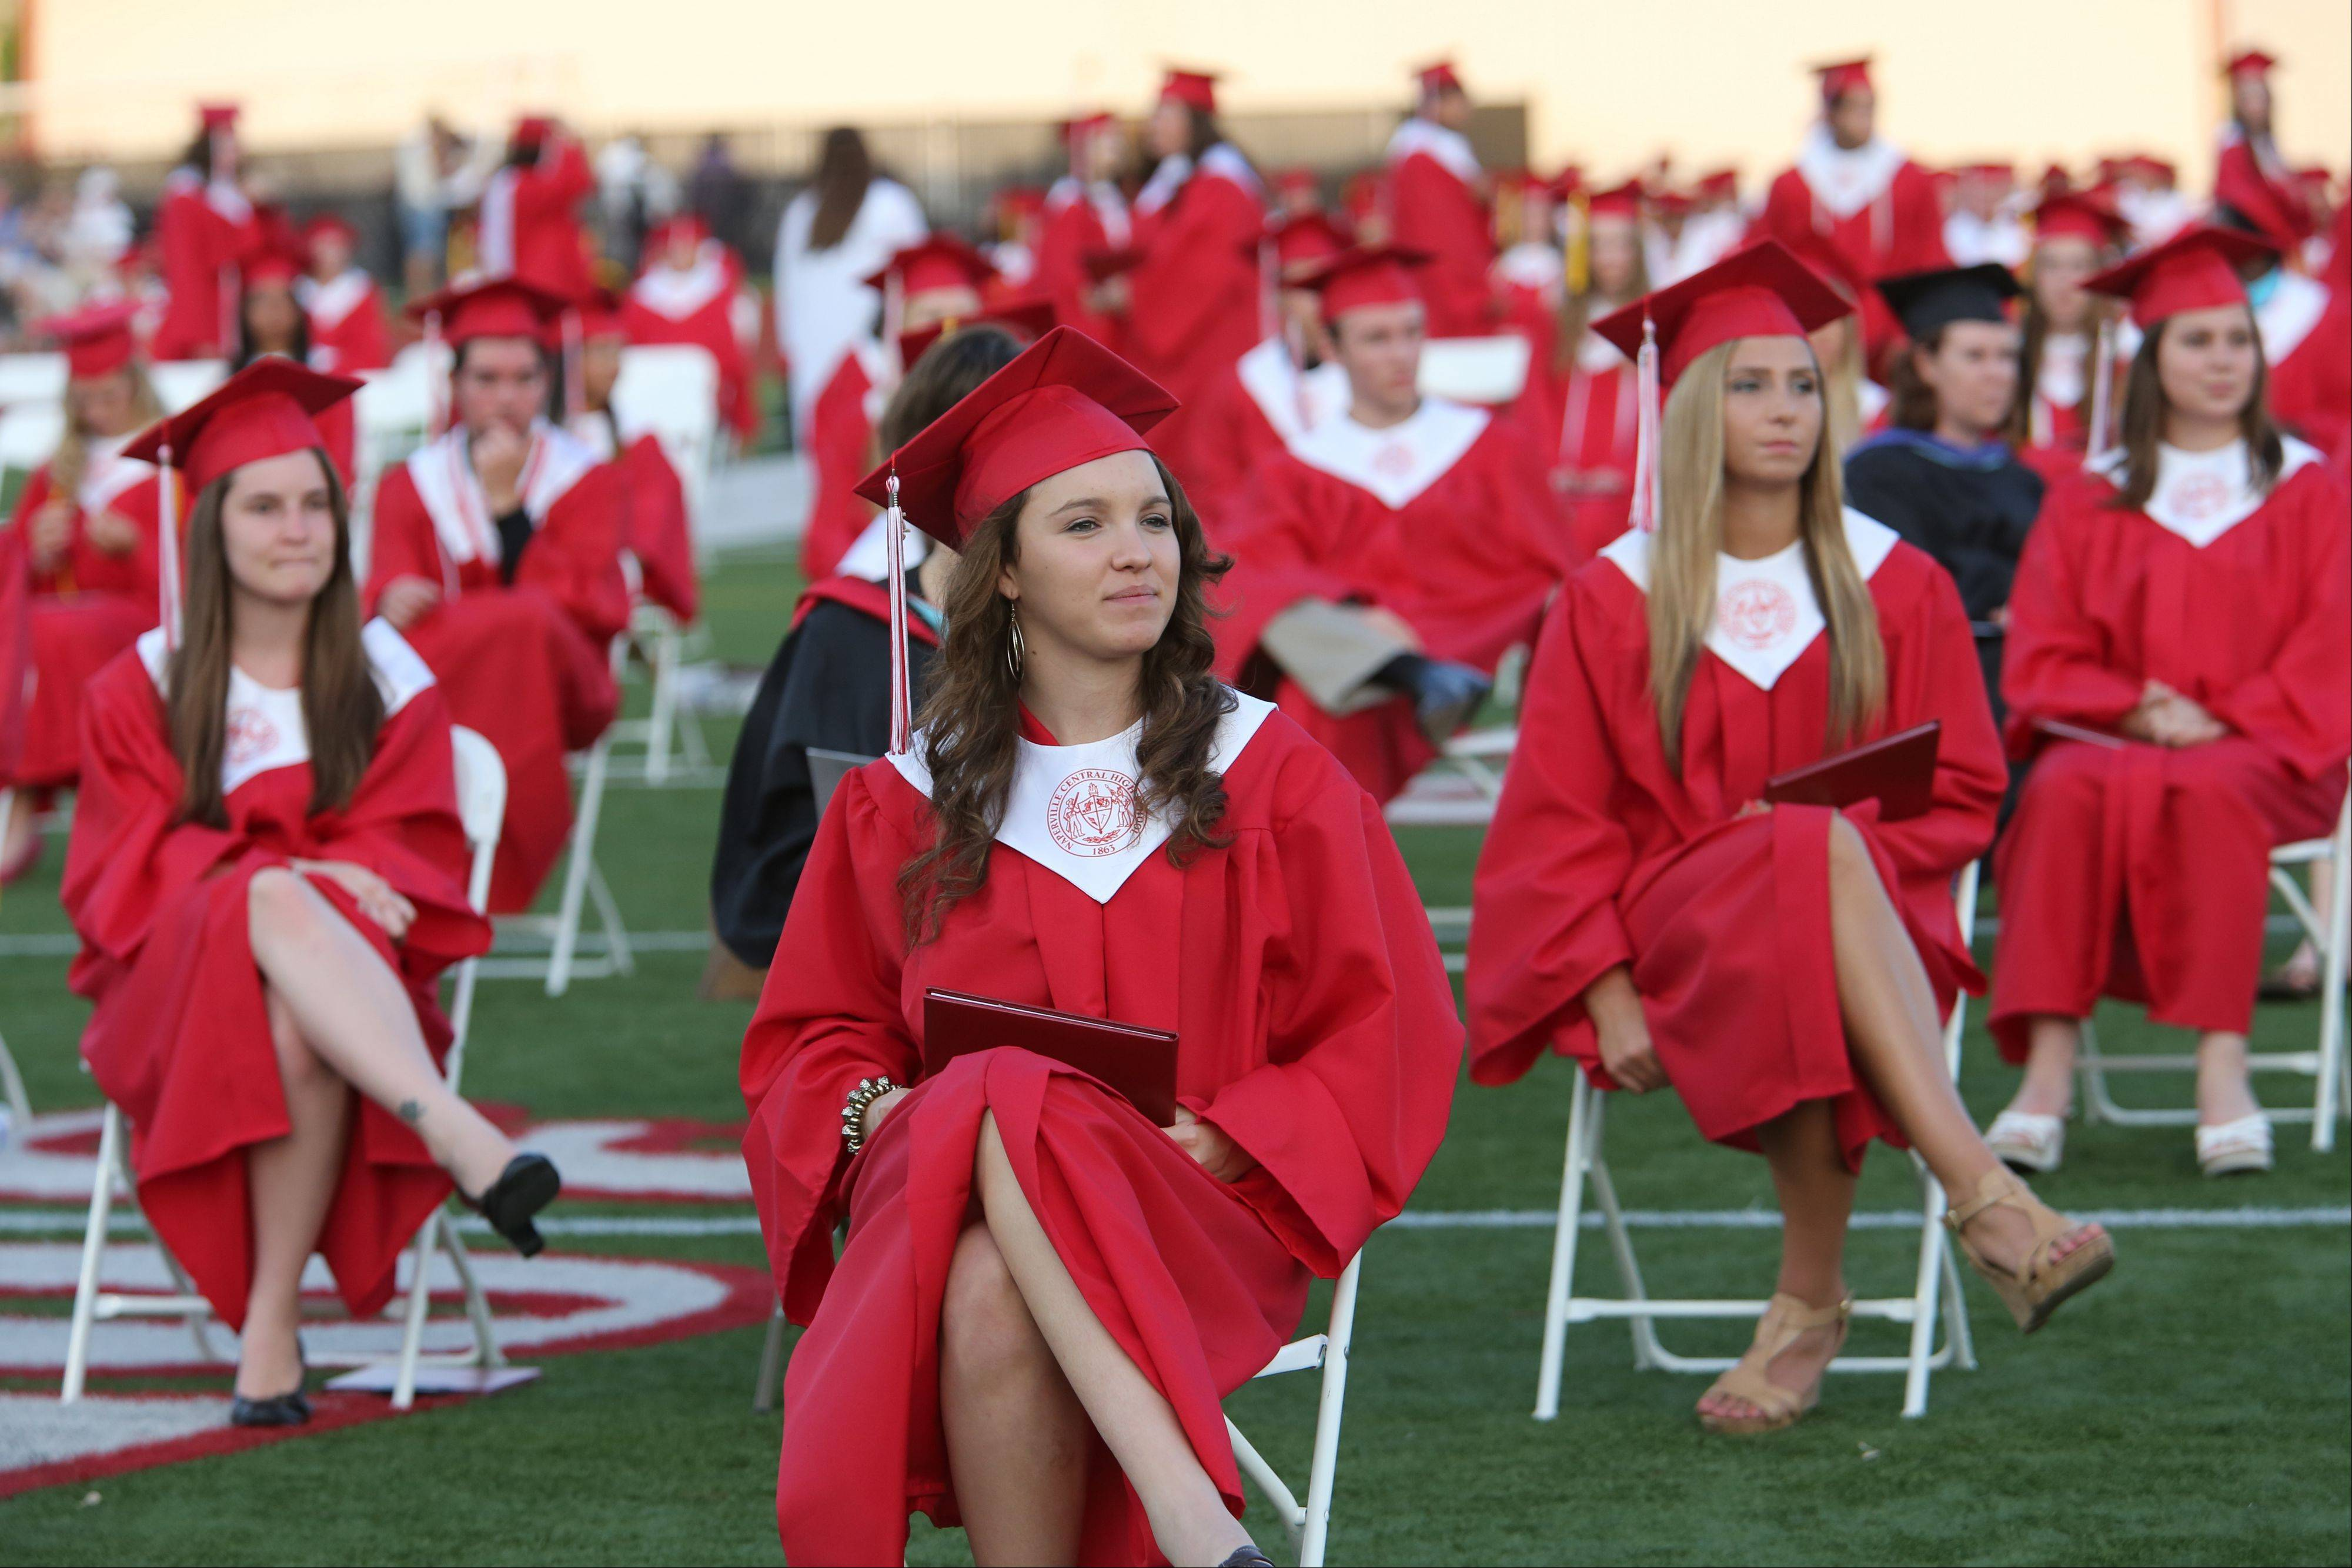 Images from the Naperville Central High School graduation on Monday, May 20 in Naperville.